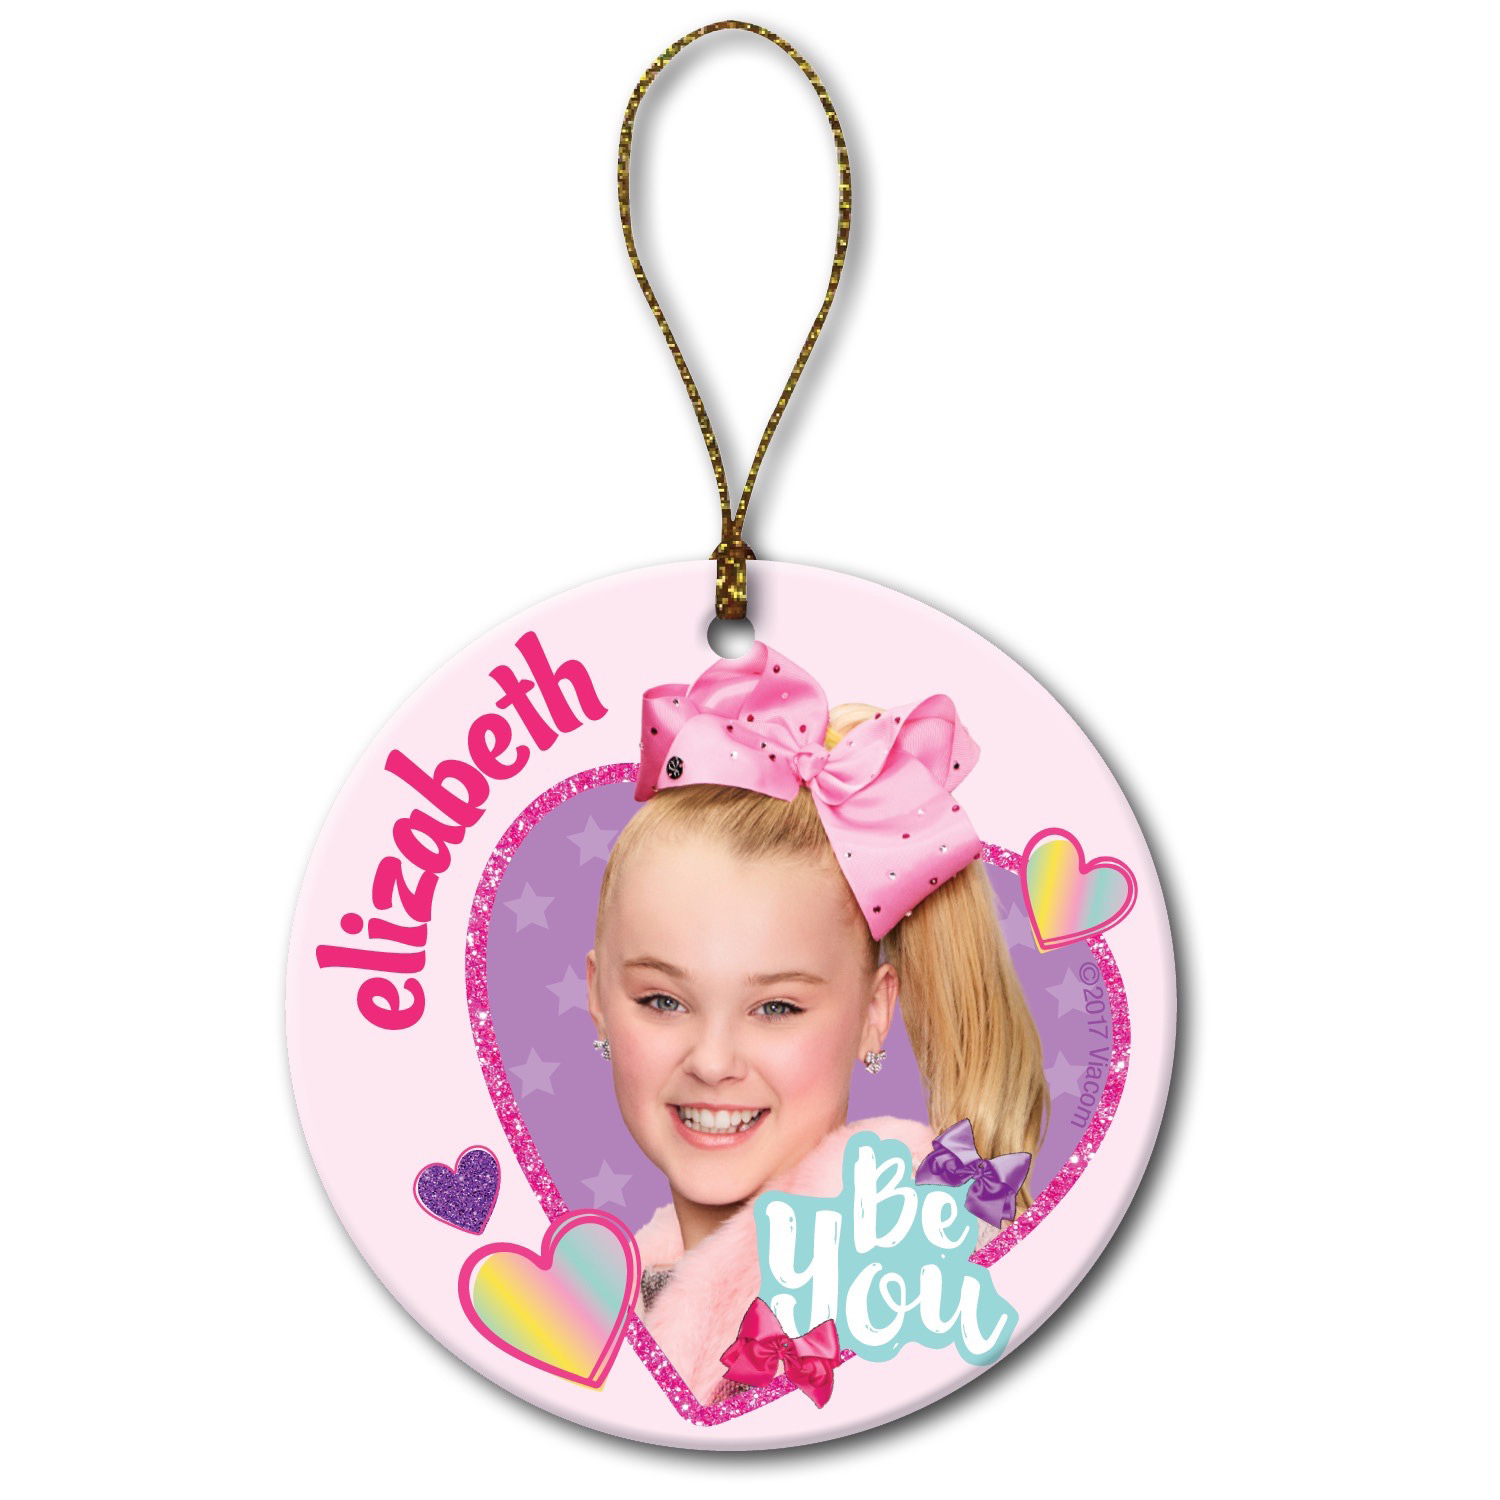 Personalized Round Christmas Ornament - JoJo Siwa